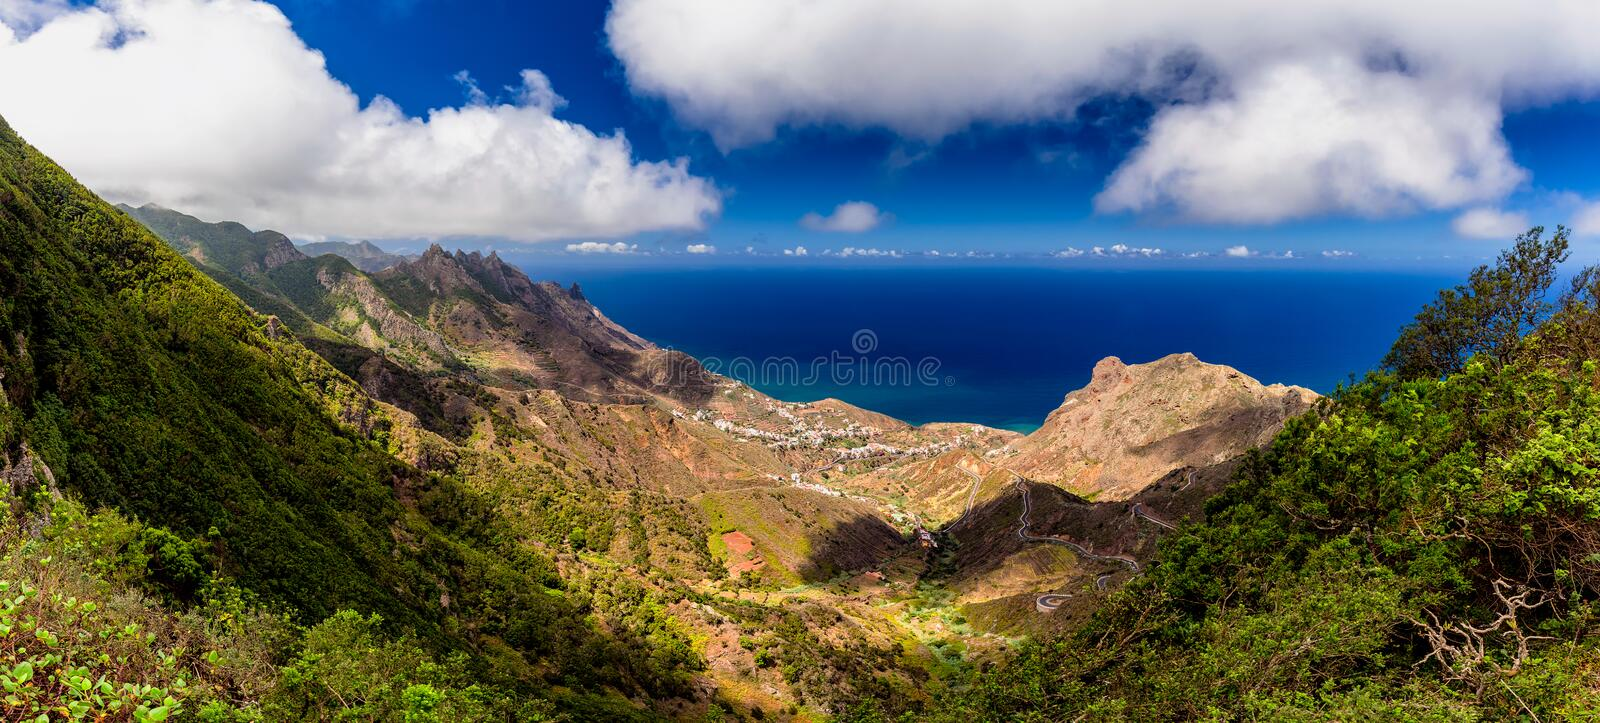 Panoramic landscape in Anaga mountains, Tenerife Canary Islands, Spain royalty free stock images